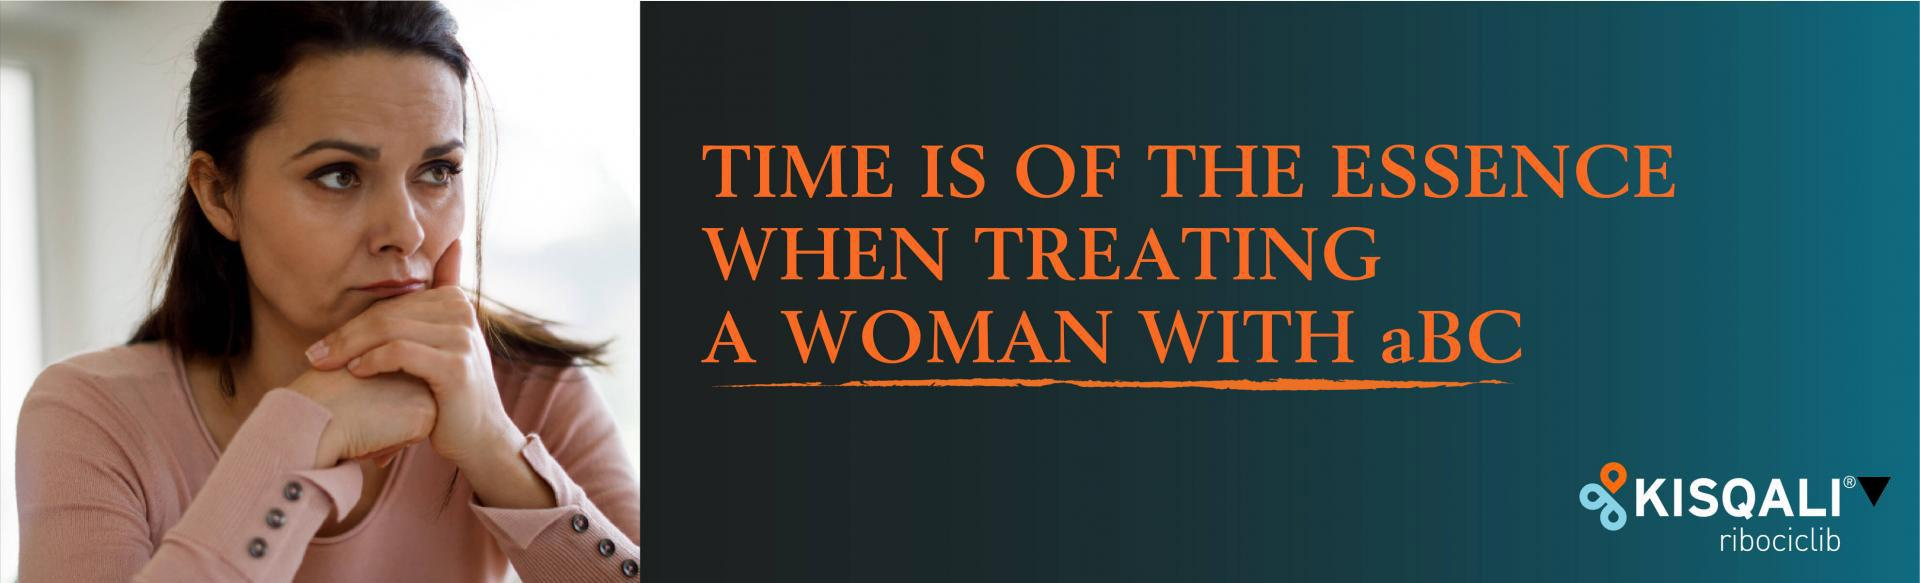 Top banner. TIME IS OF THE ESSENCE WHEN TREATING A WOMAN WITH aBC